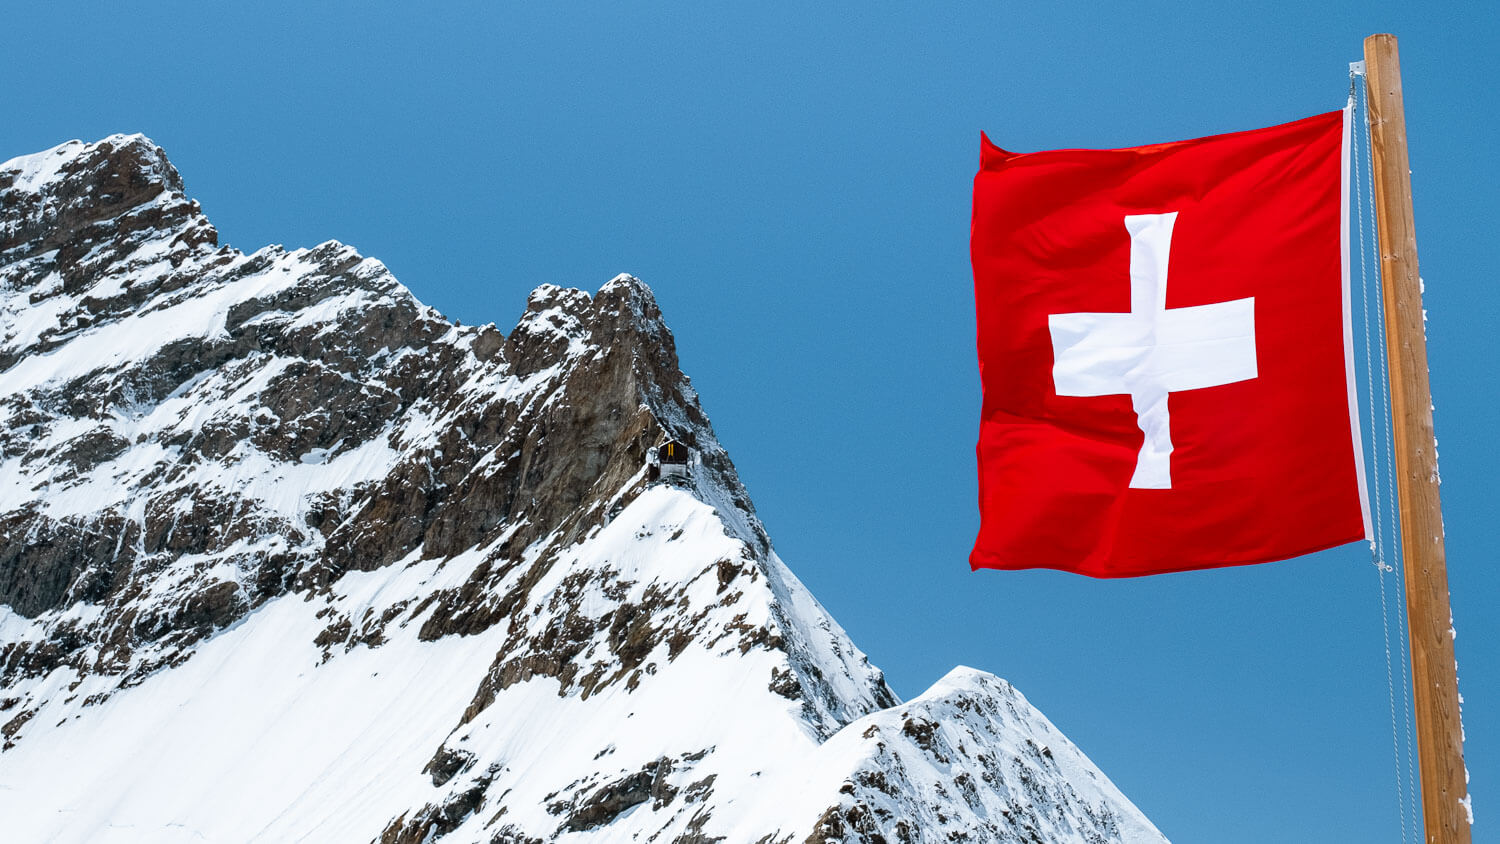 "The Swiss flag and mountain peaks Jungfraujoch, Switzerland. Travel photography and guide by © Natasha Lequepeys for ""And Then I Met Yoko"". #wengen #jungfraujoch #travelguide #switzerland #travelphotography"